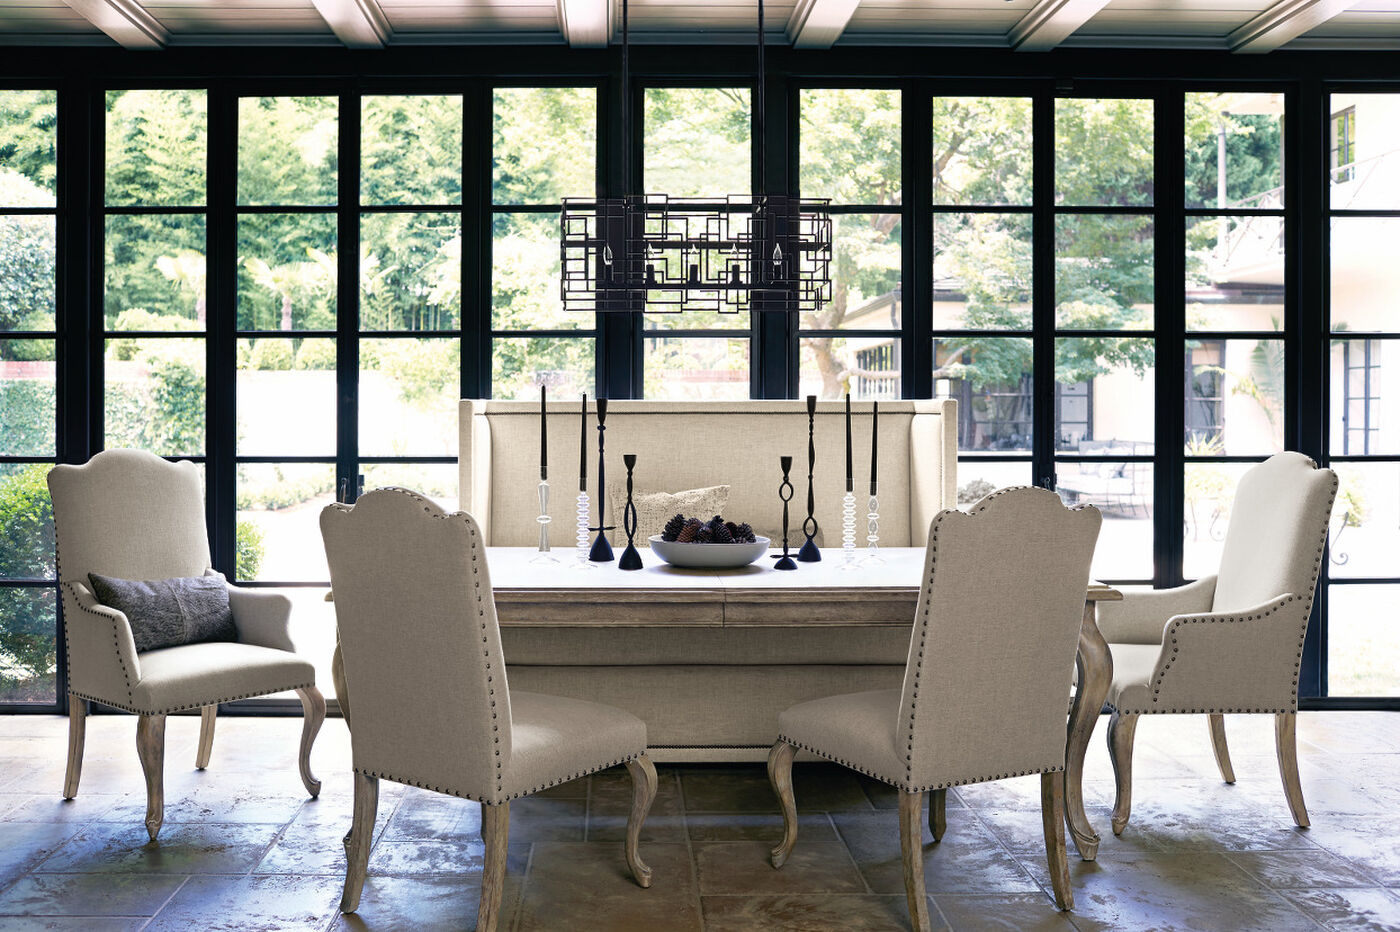 Bernhardt Campania Weathered Sand Dining Table | Mathis Brothers ...